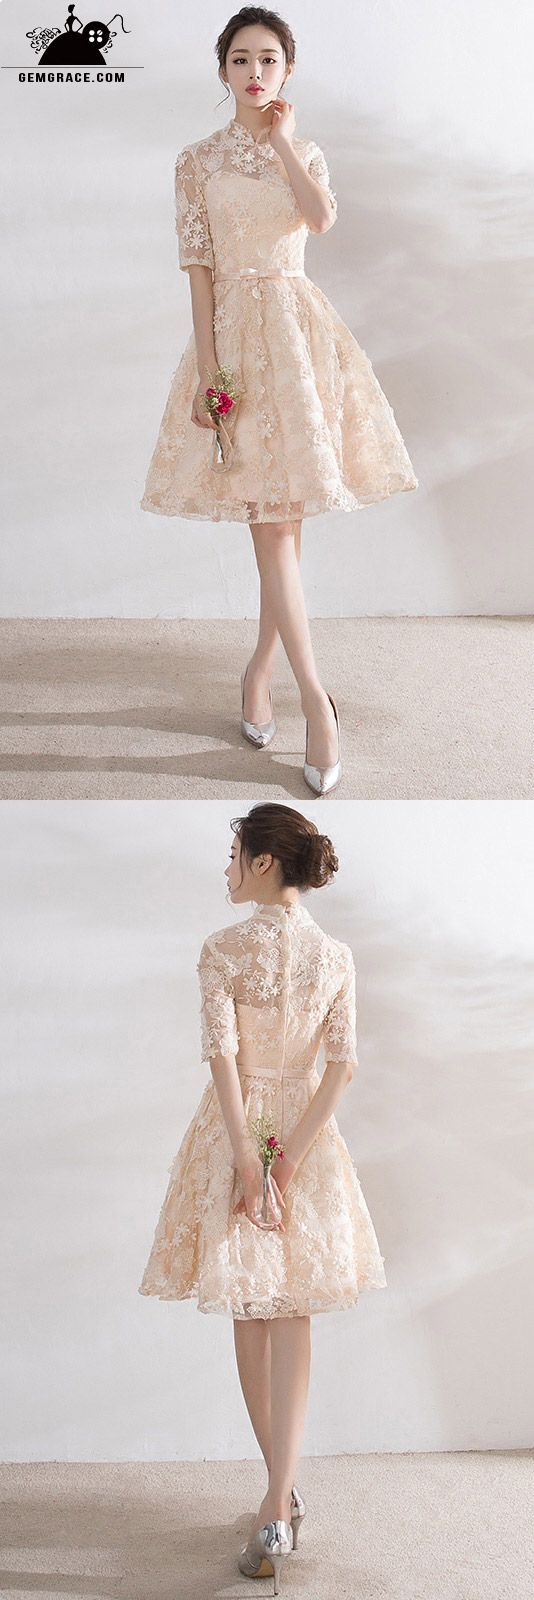 Short wedding reception dress  Short champagne lace high neck reception dress with collar  Sweet